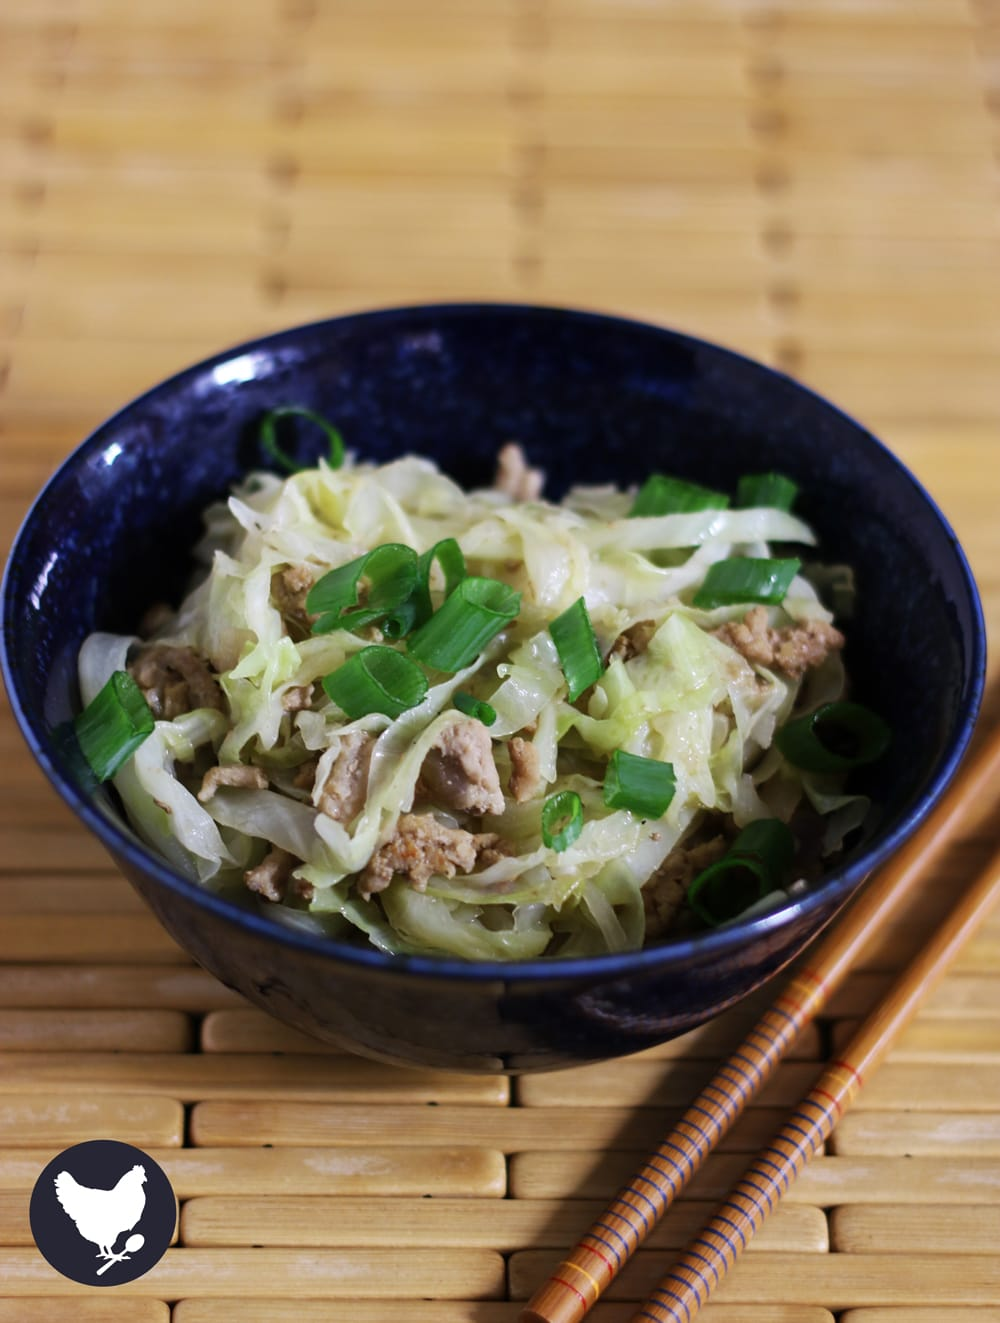 Egg Roll Bowls have all the great flavor of your favorite appetizer but in the form of an easy and delicious meal. Get this recipe from Cosmopolitan Cornbread (It's also low-carb and paleo friendly!)